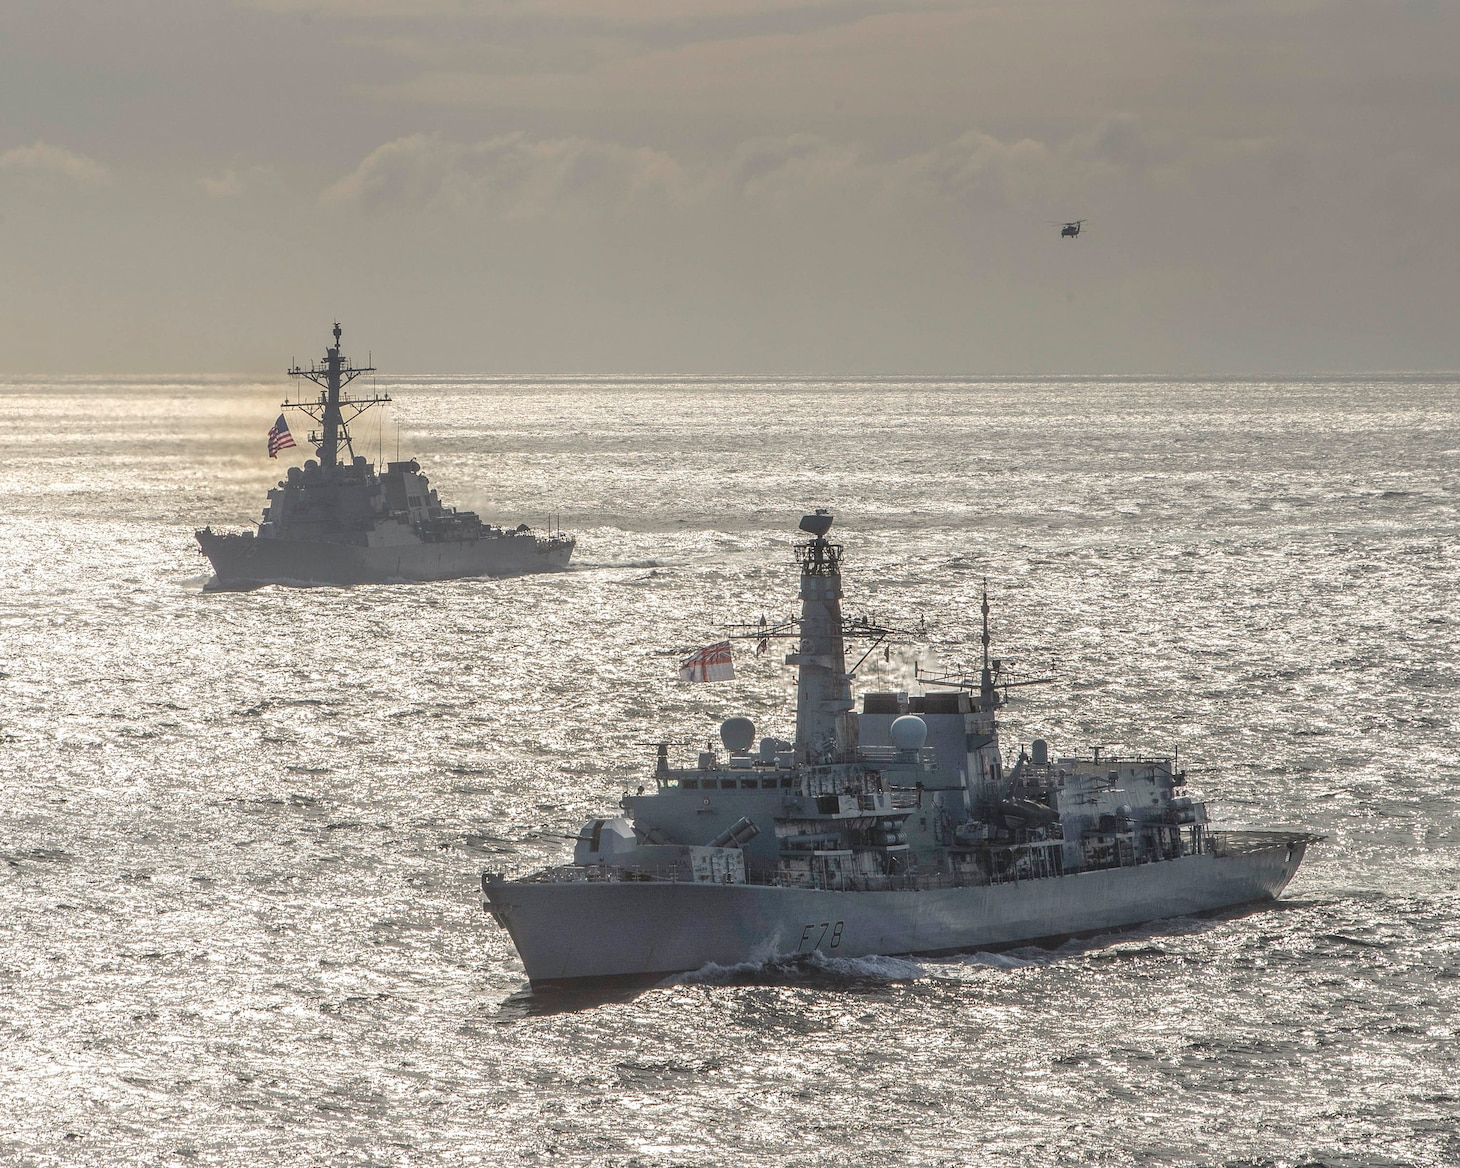 ARCTIC OCEAN (May 5, 2020) The Type-23 Duke-class frigate HMS Kent (F78), the Arleigh Burke-class guided-missile destroyer USS Roosevelt (DDG 80), the Arleigh Burke-class guided-missile destroyer USS Porter (DDG 78), the Arleigh Burke-class guided-missile destroyer USS Donald Cook (DDG 75), and USNS Supply (T-AOE-6) conduct a photo exercise (PHOTOEX) while conducting joint operations to ensure maritime security in the Arctic Ocean, May 5, 2020.